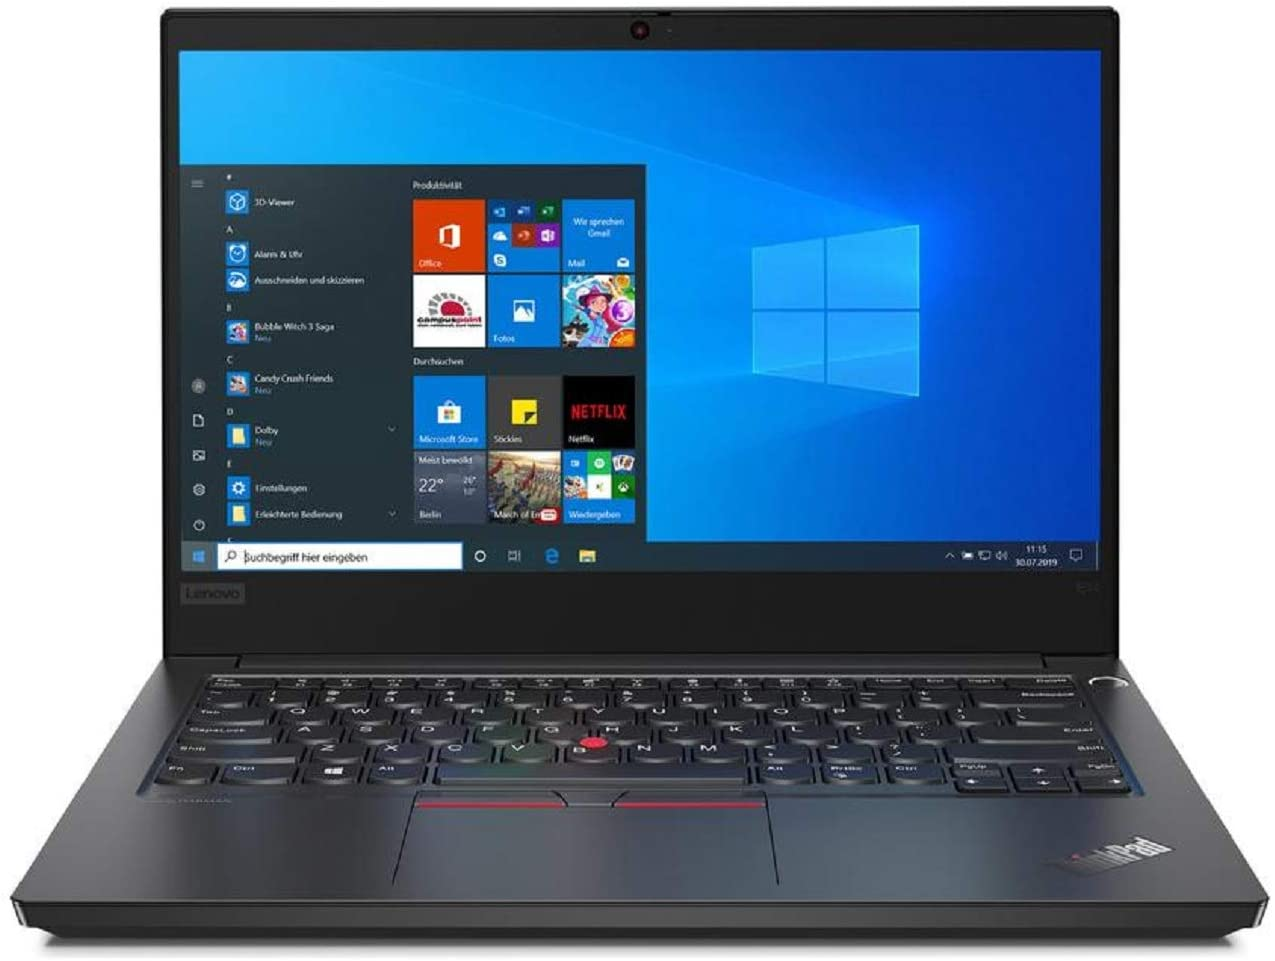 "OEM Lenovo ThinkPad E14 14"" FHD Display 1920x1080 IPS, Intel Quad Core i5-10210U, 16GB RAM, 250GB SSD, W10P, Business Laptop"